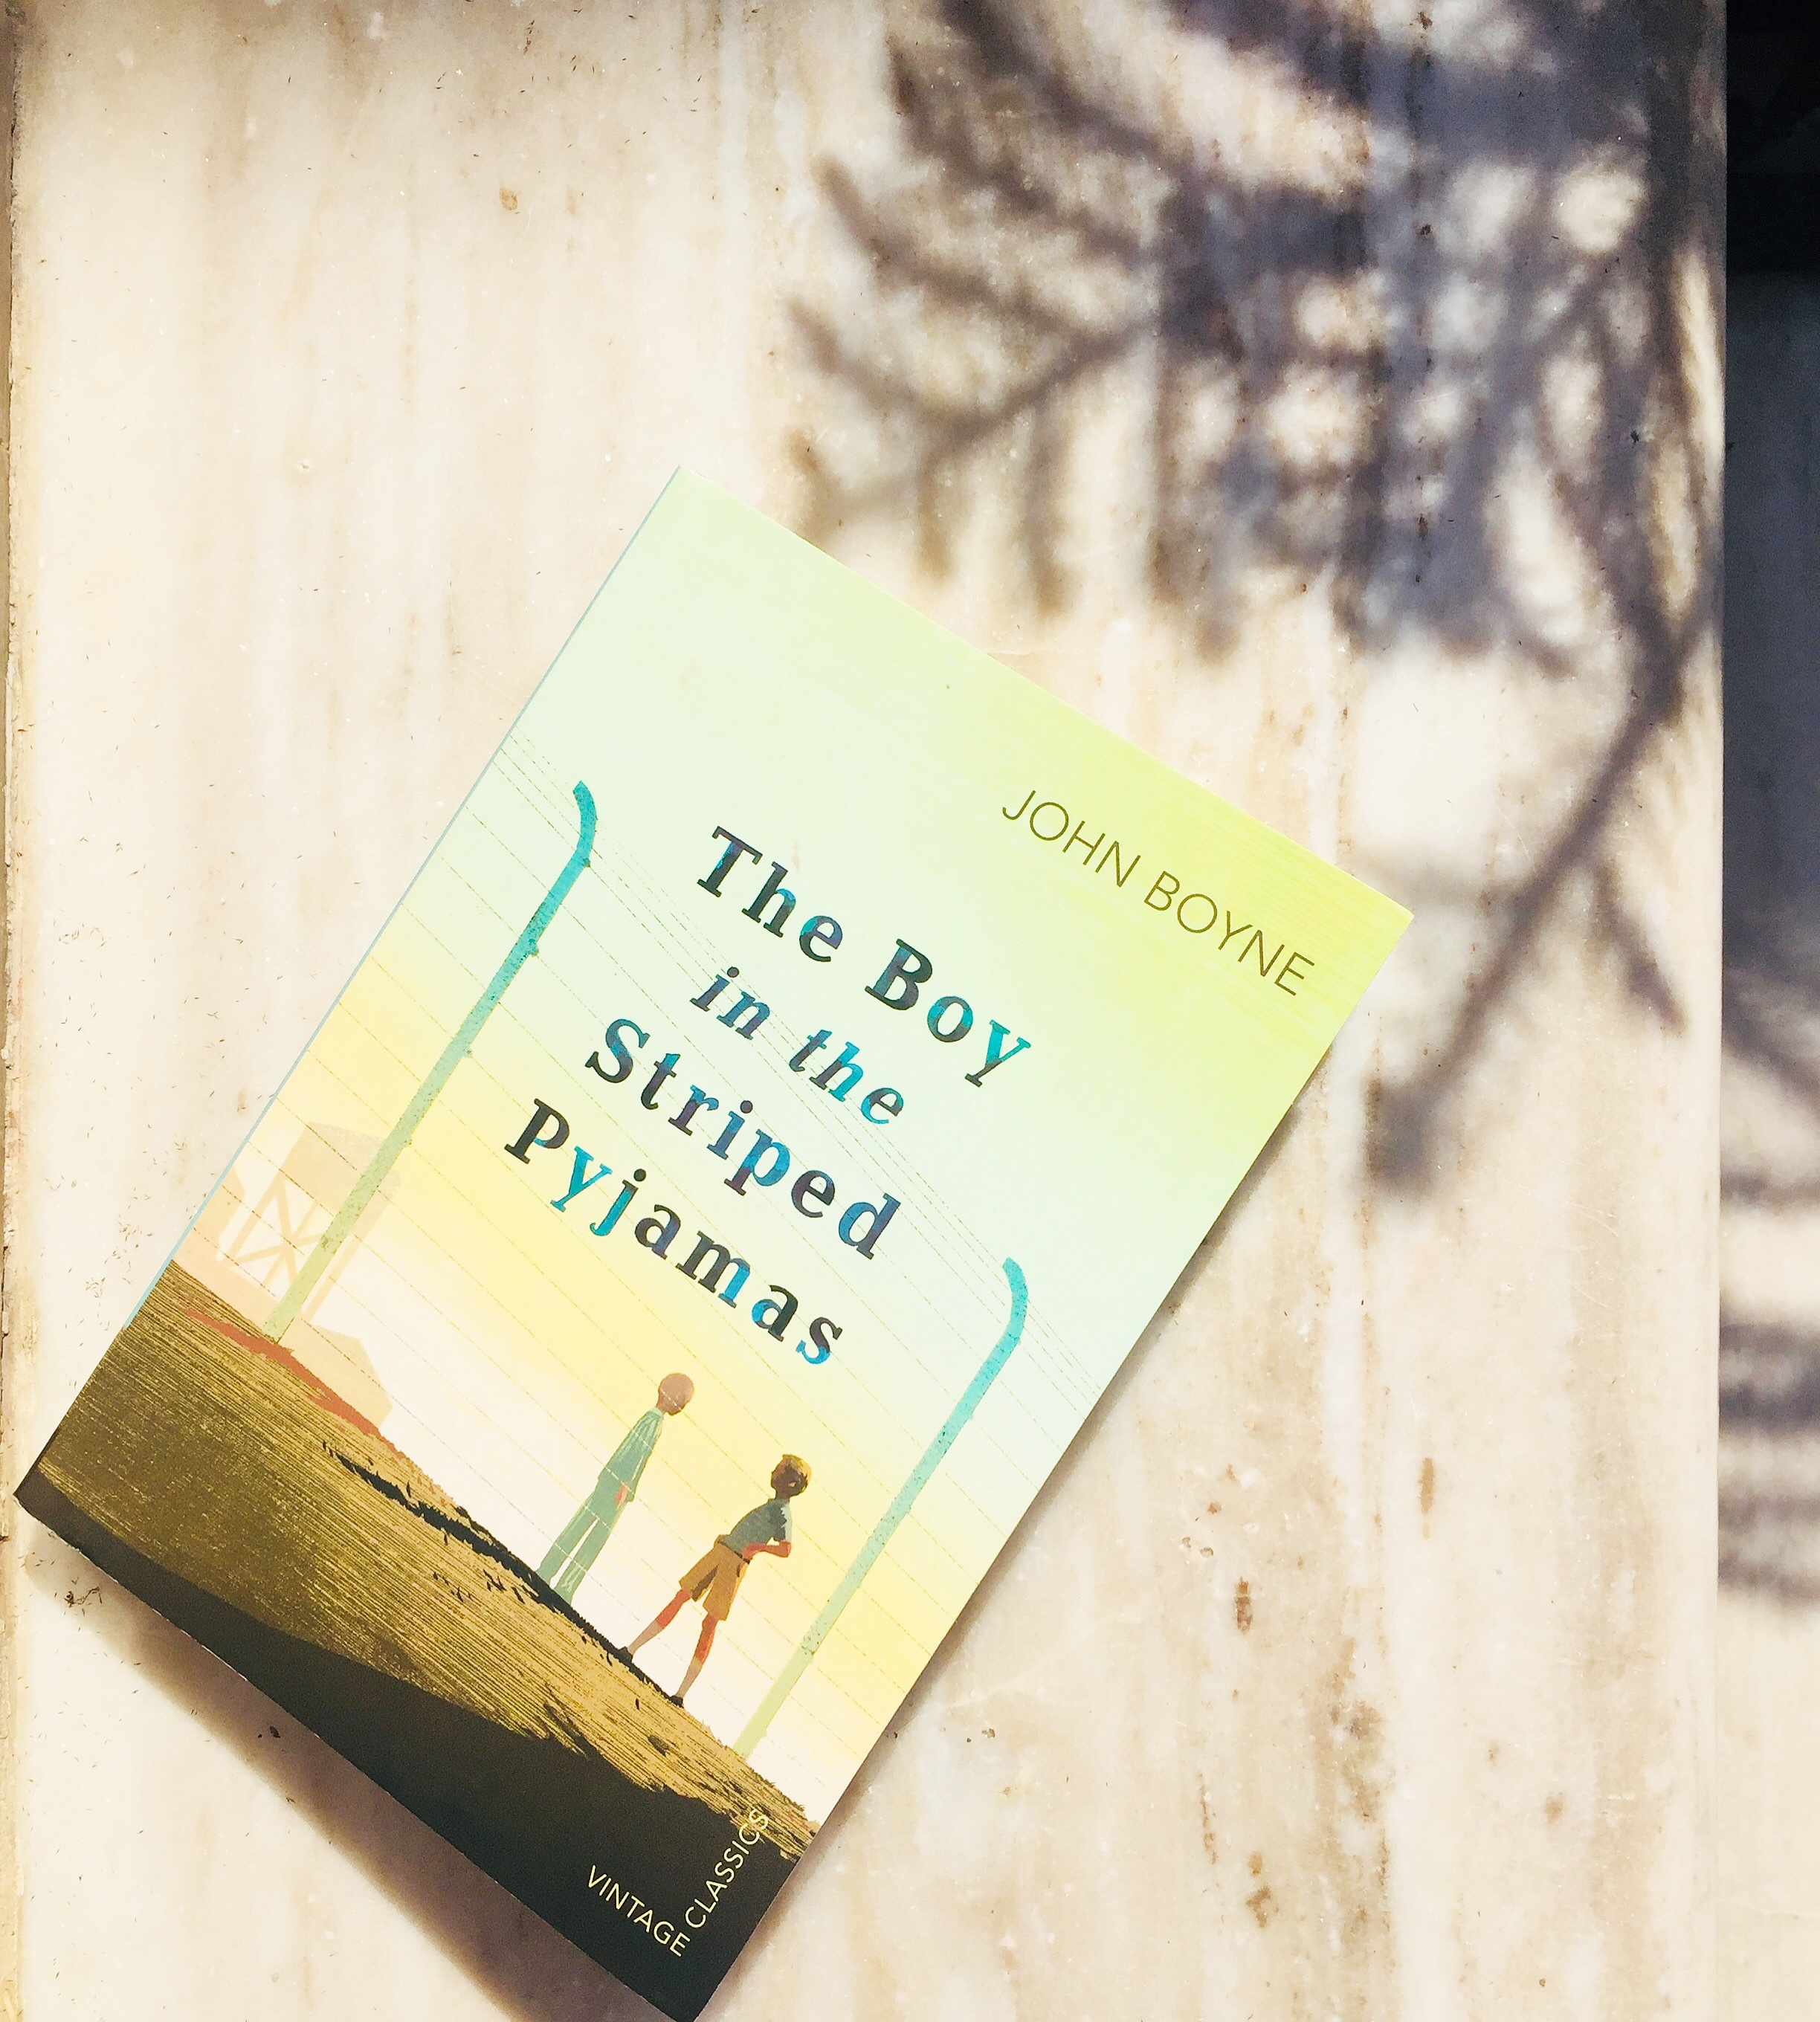 Book Review – The Boy in the Striped Pyjamas